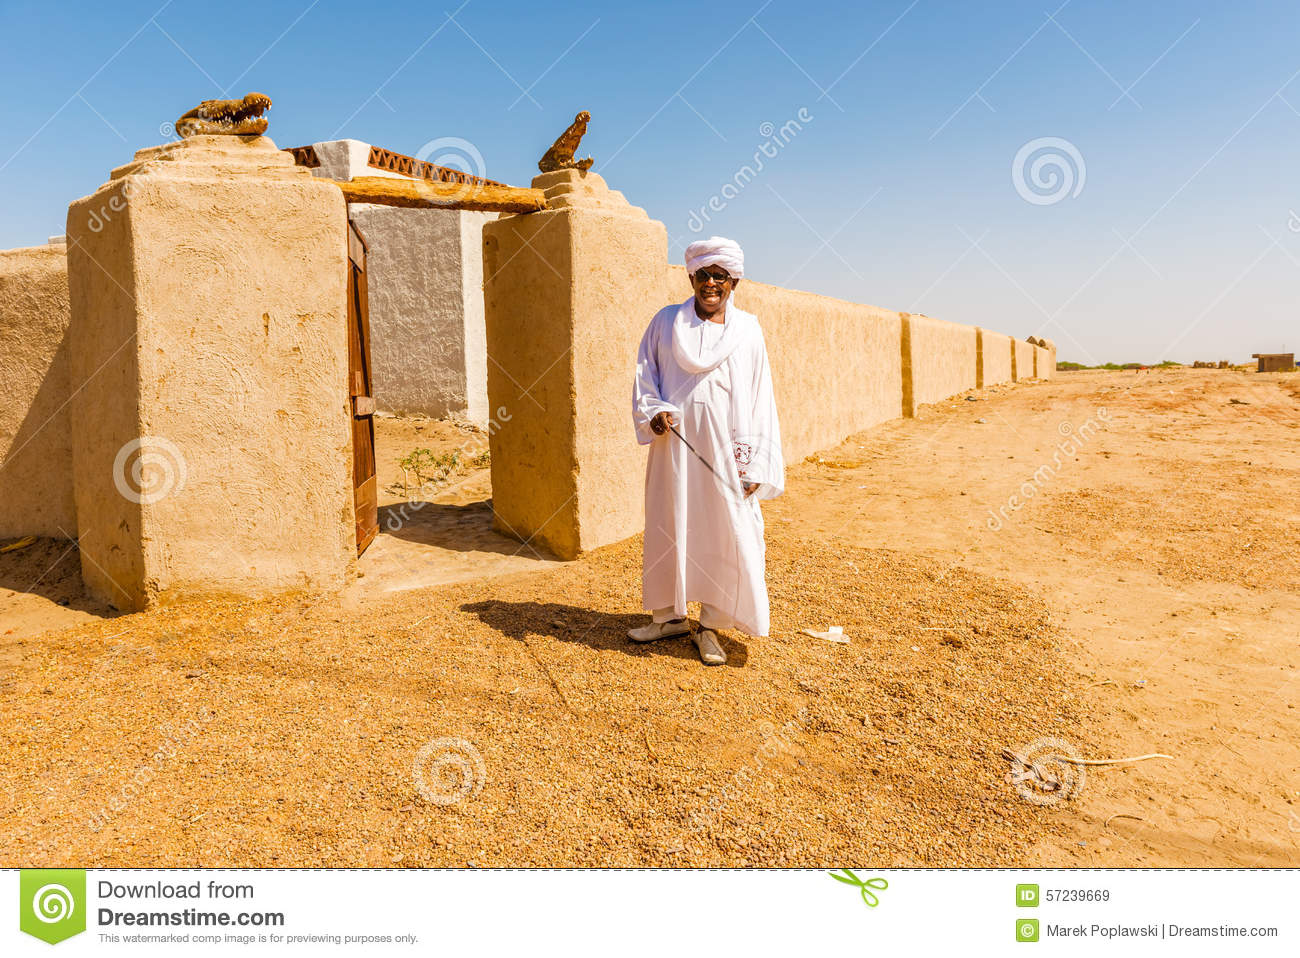 Nubian Village In Sudan Stock Photo.